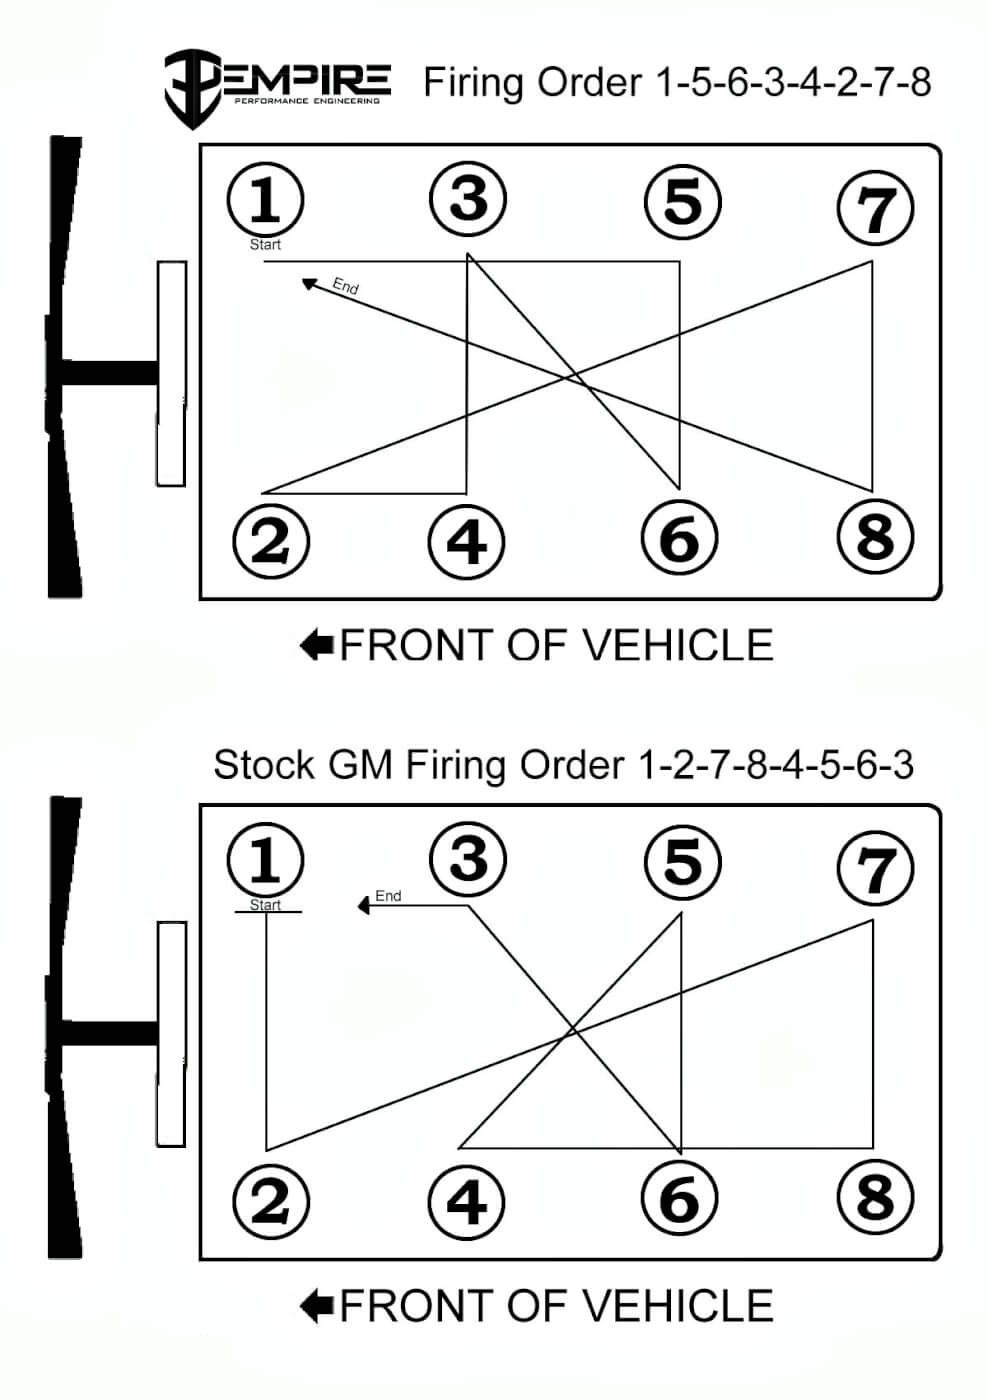 Alternate Fire Cam On A Duramax 66 6 Cylinder Gm Wiring Harness Diagram This Illustration Shows The Difference Between Factory Firing Order Bottom And